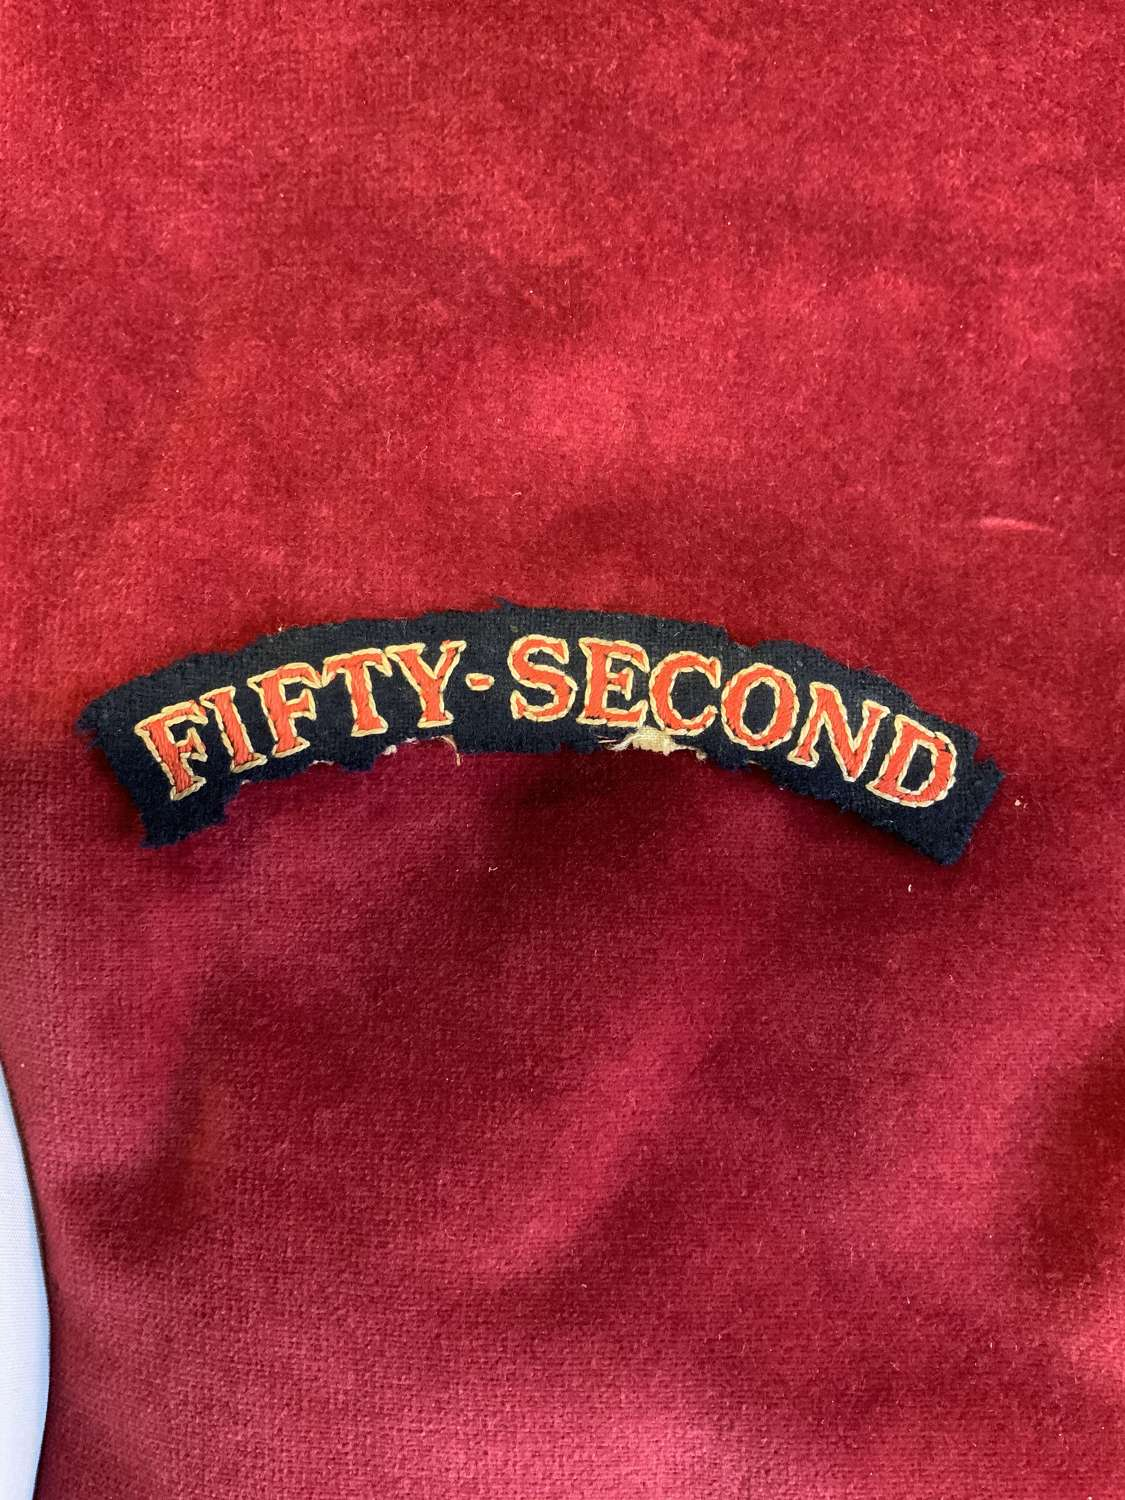 Fifty Second